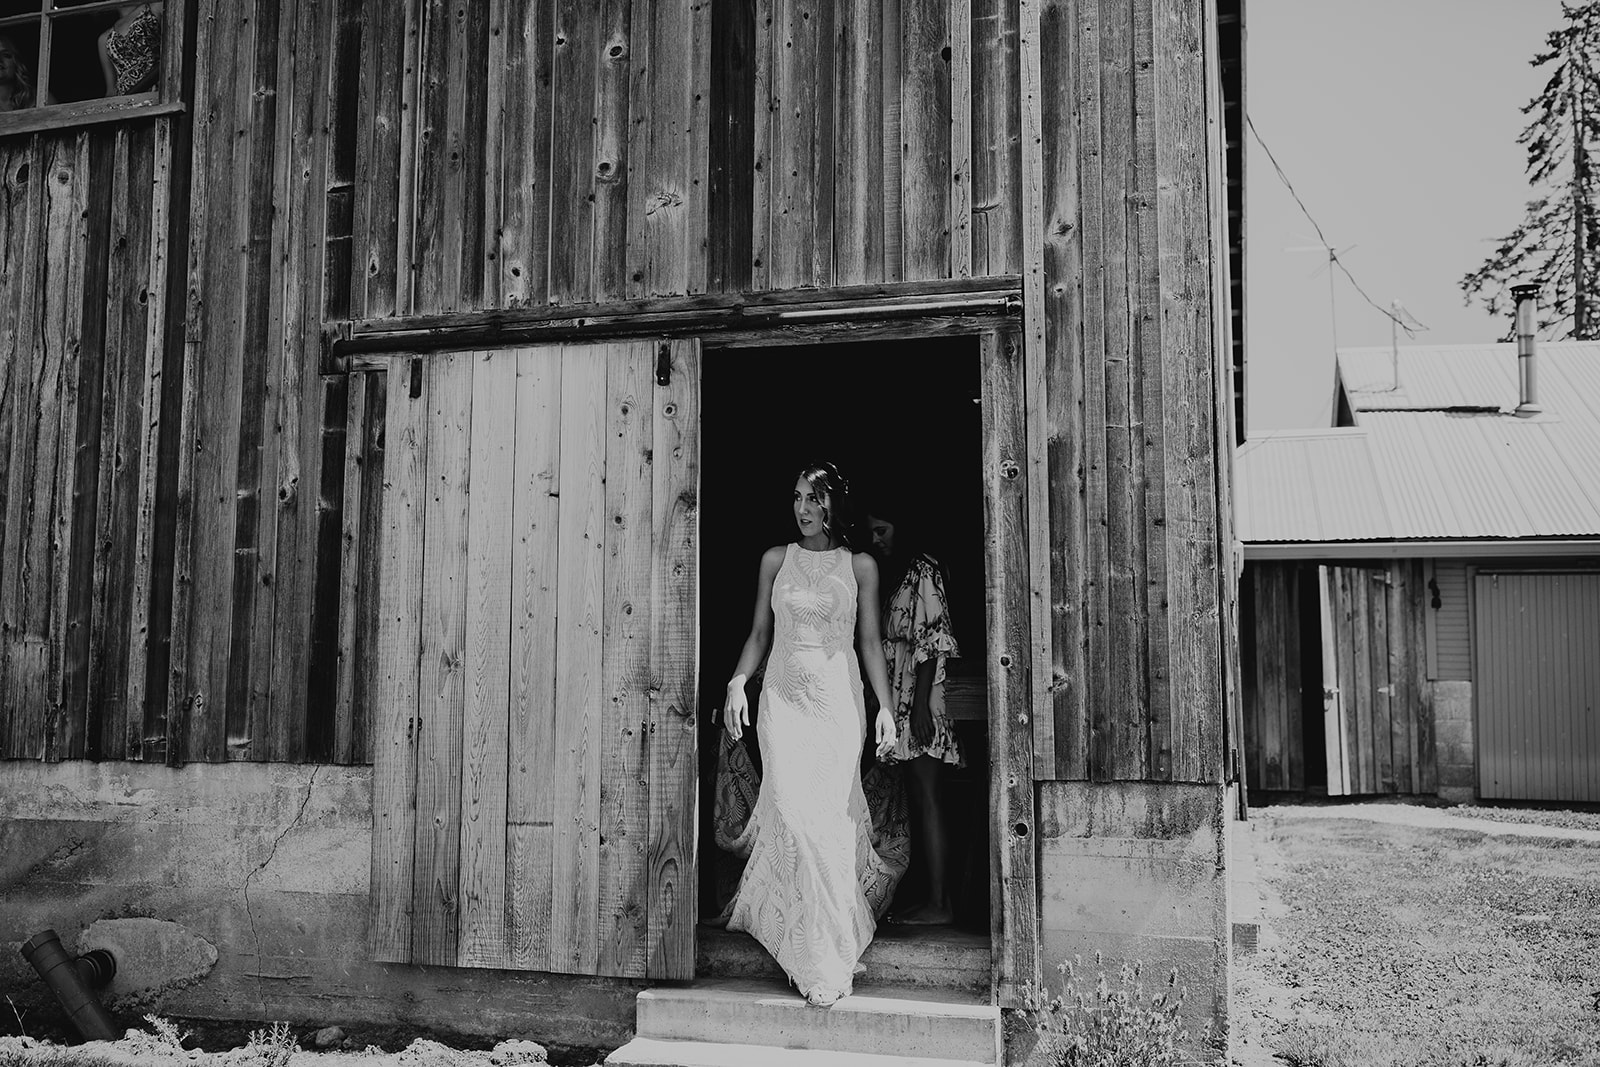 mount-vernon-wedding-salt-box-barn-amanda-riley-megan-gallagher-photography-3_(135_of_250).jpg